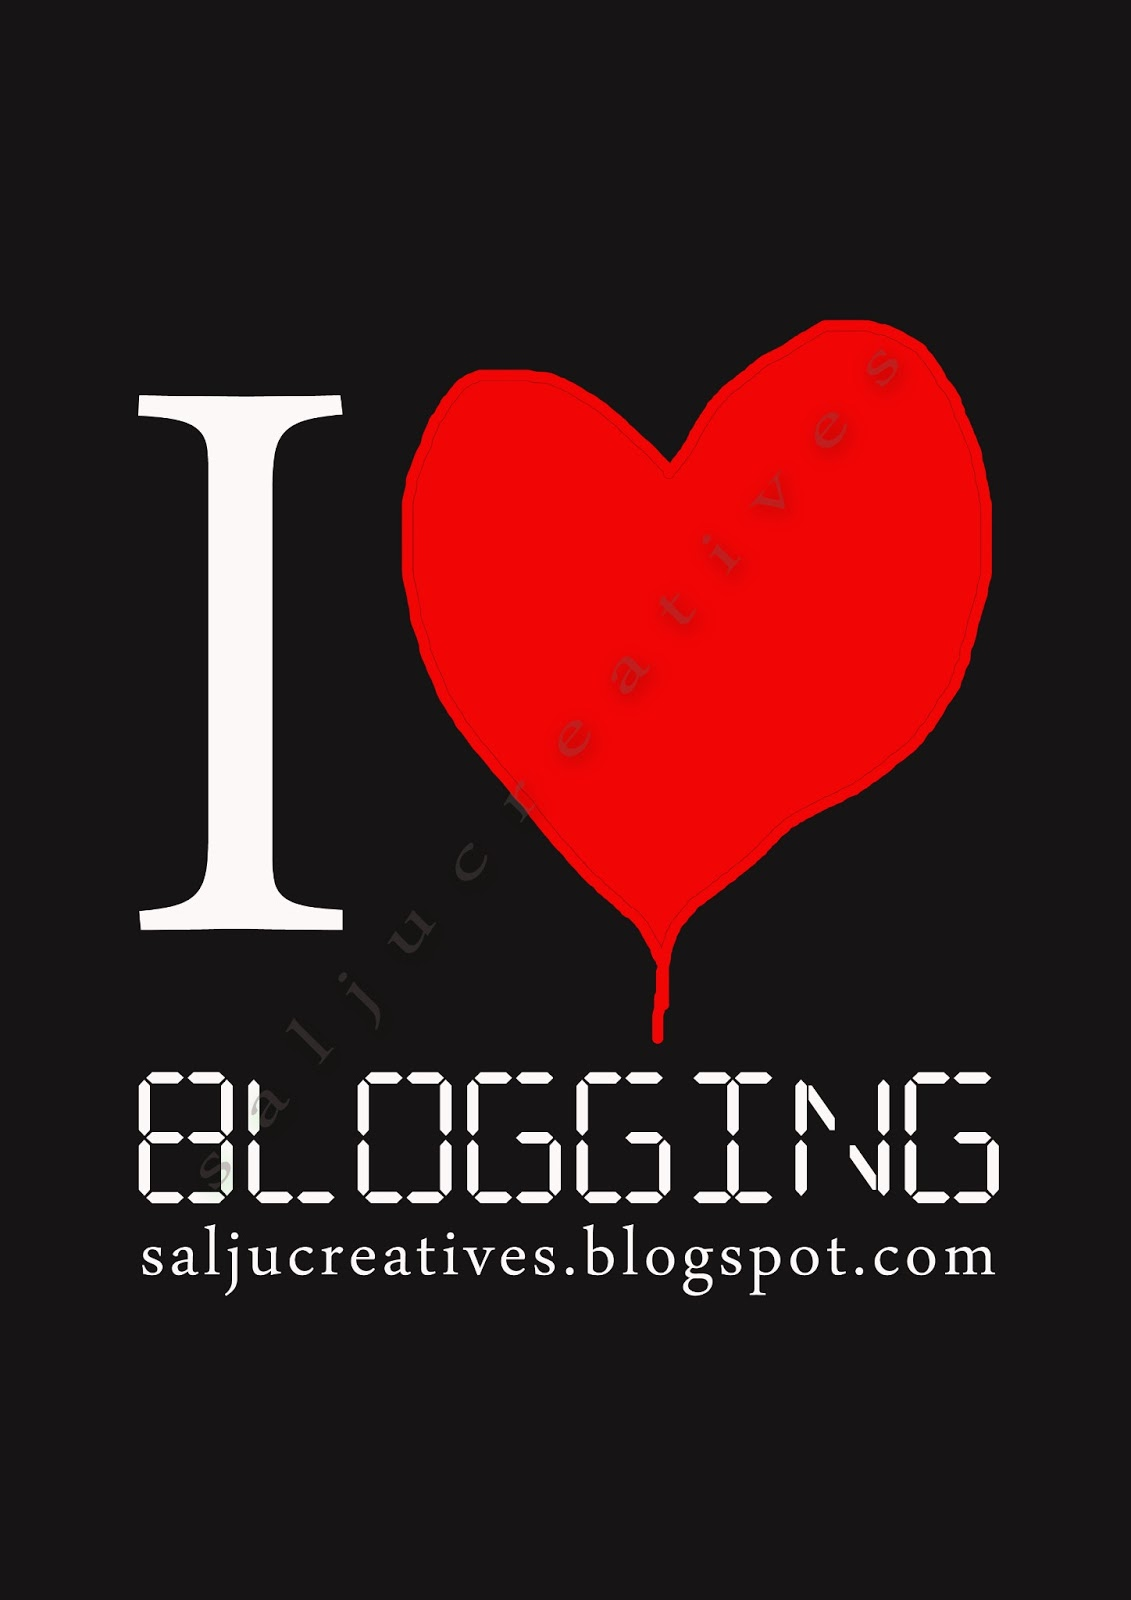 IBlogging